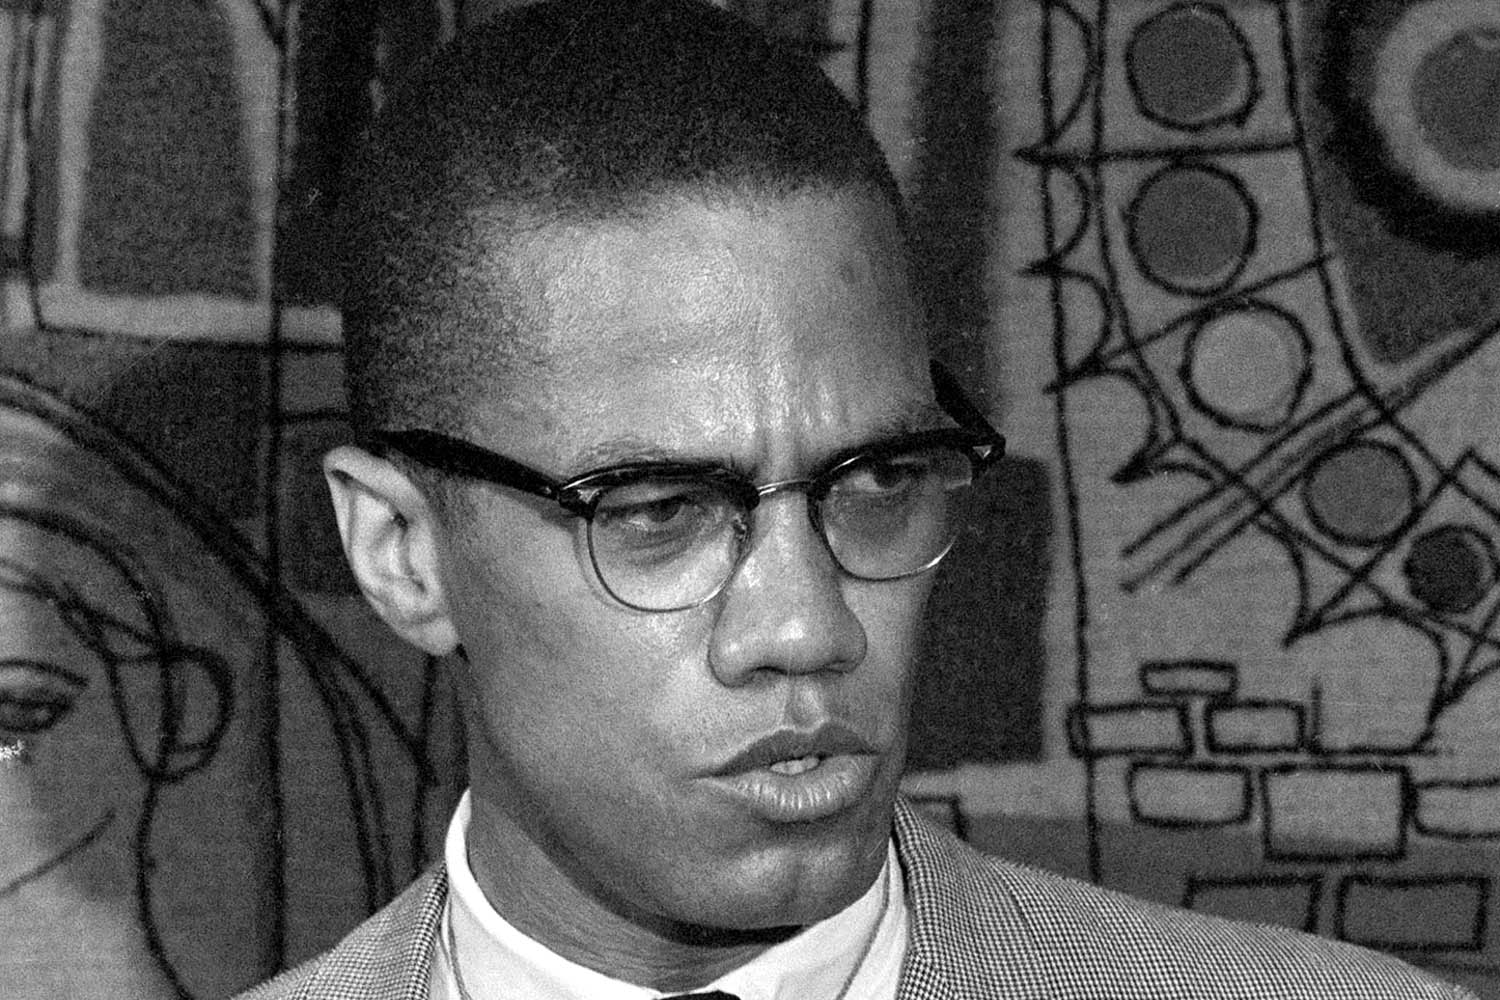 malcolm x essay outline malcolm x learning to essays questions satkom info dbq essay how democratic was andrew jackson